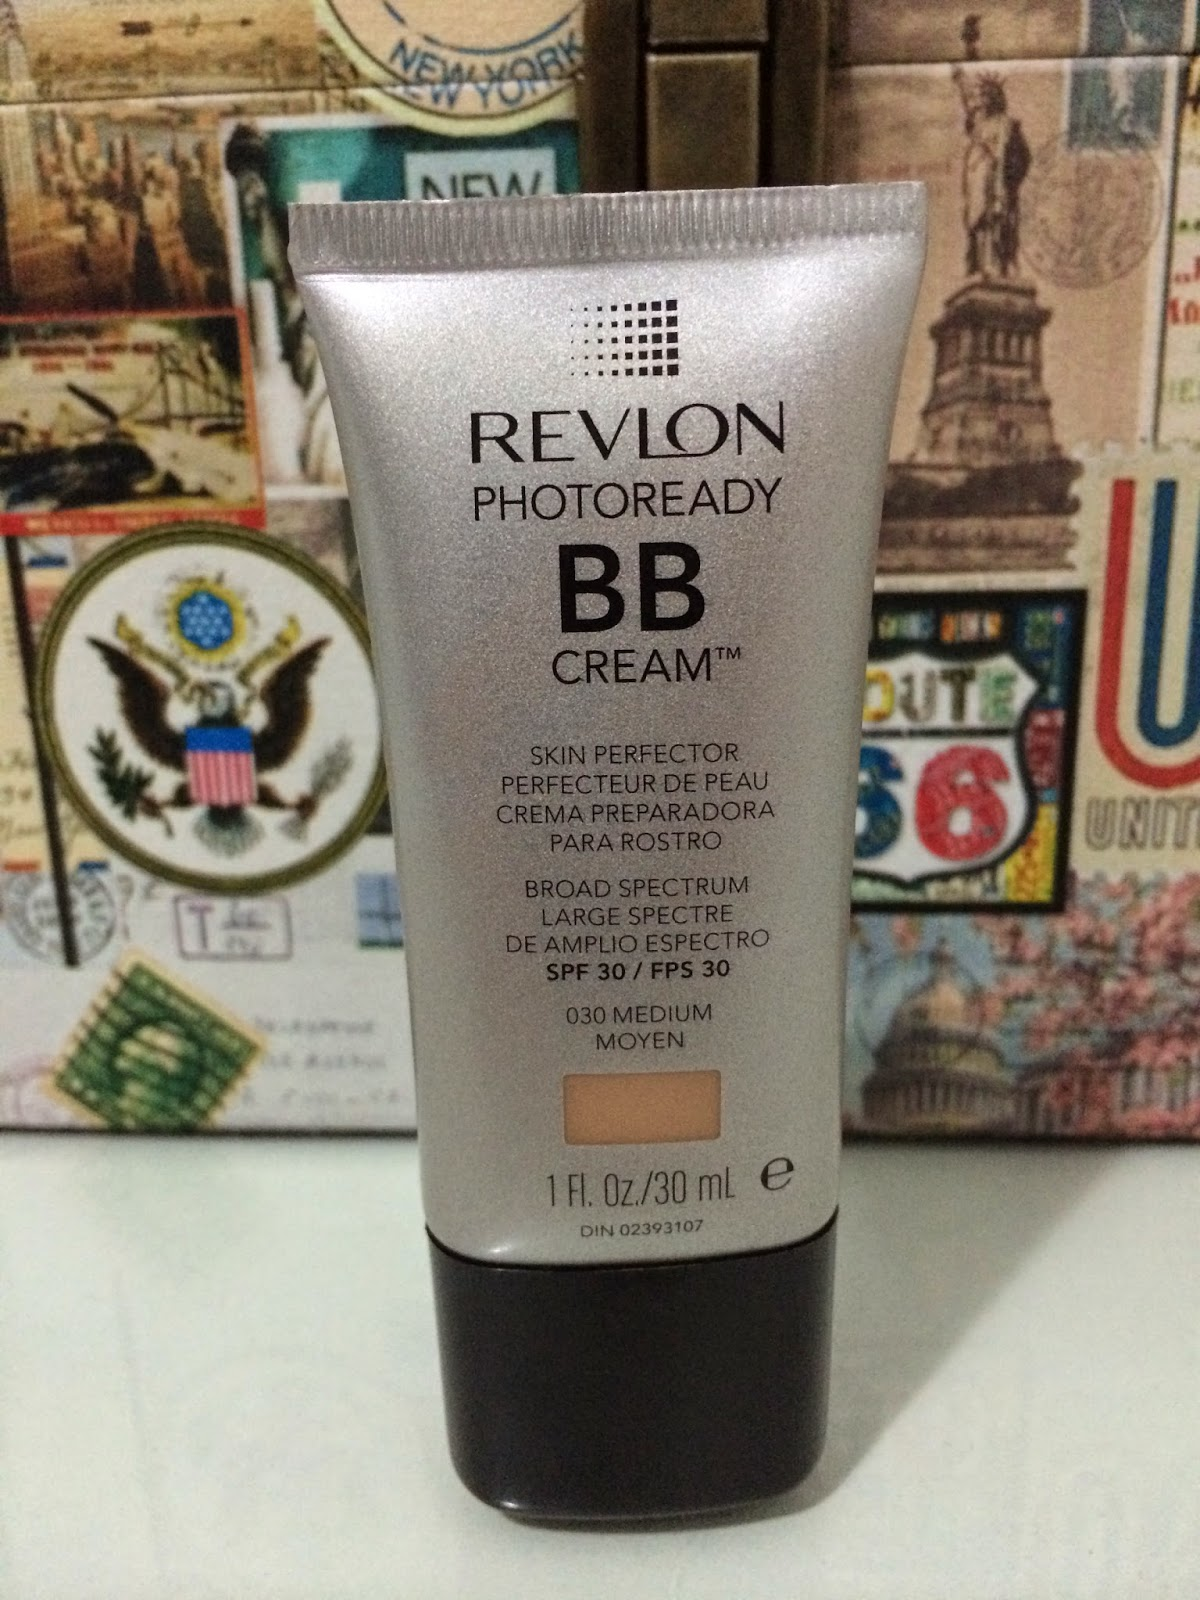 BB Cream, photoready, Revlon, SPF 30, 030, medium